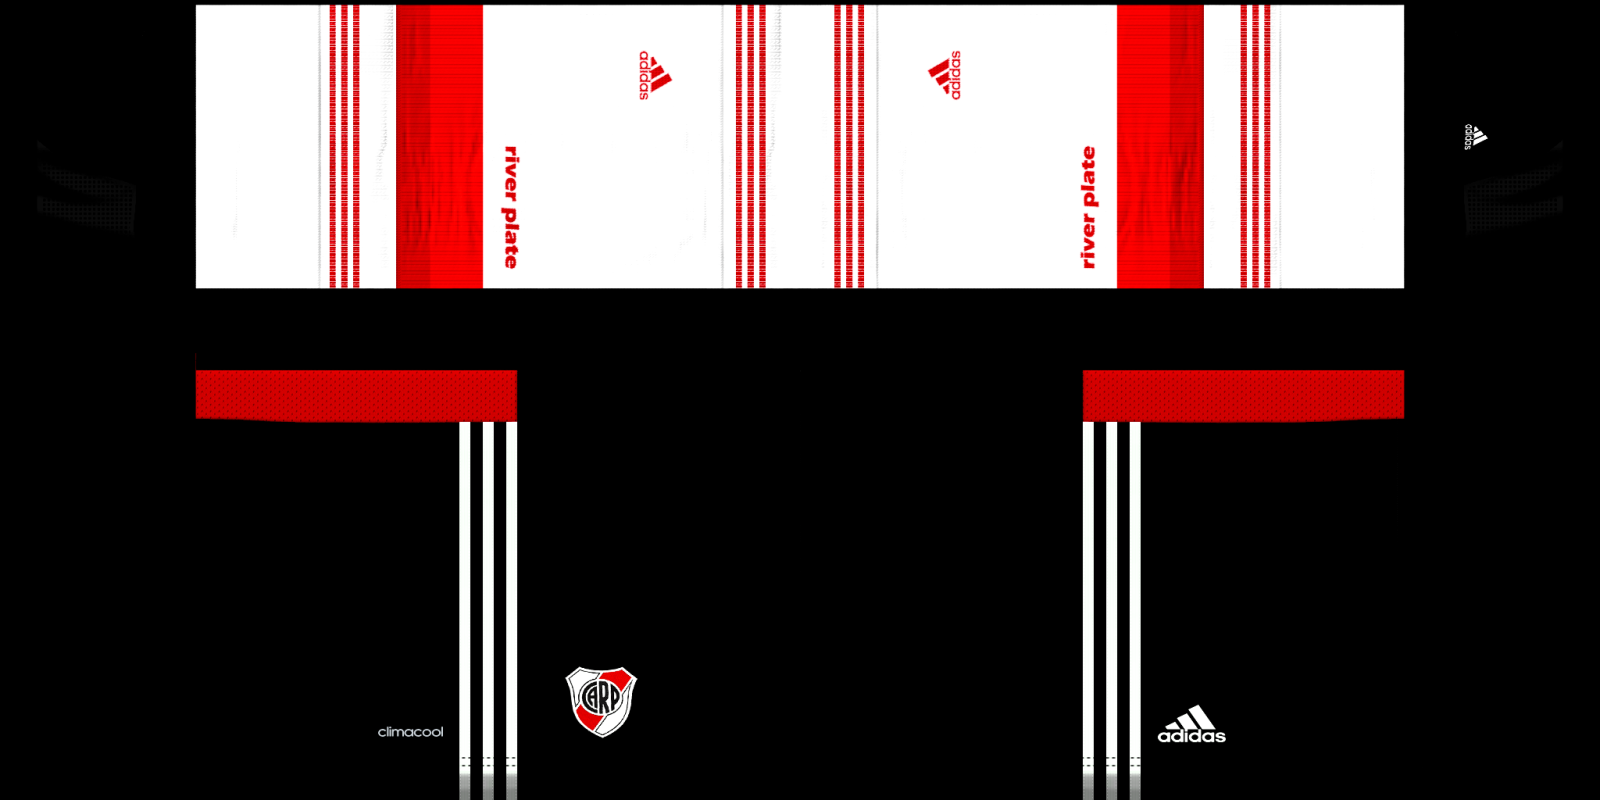 FULL CAMISETAS DE RIVER 2016 (TODAS) Vzinbo